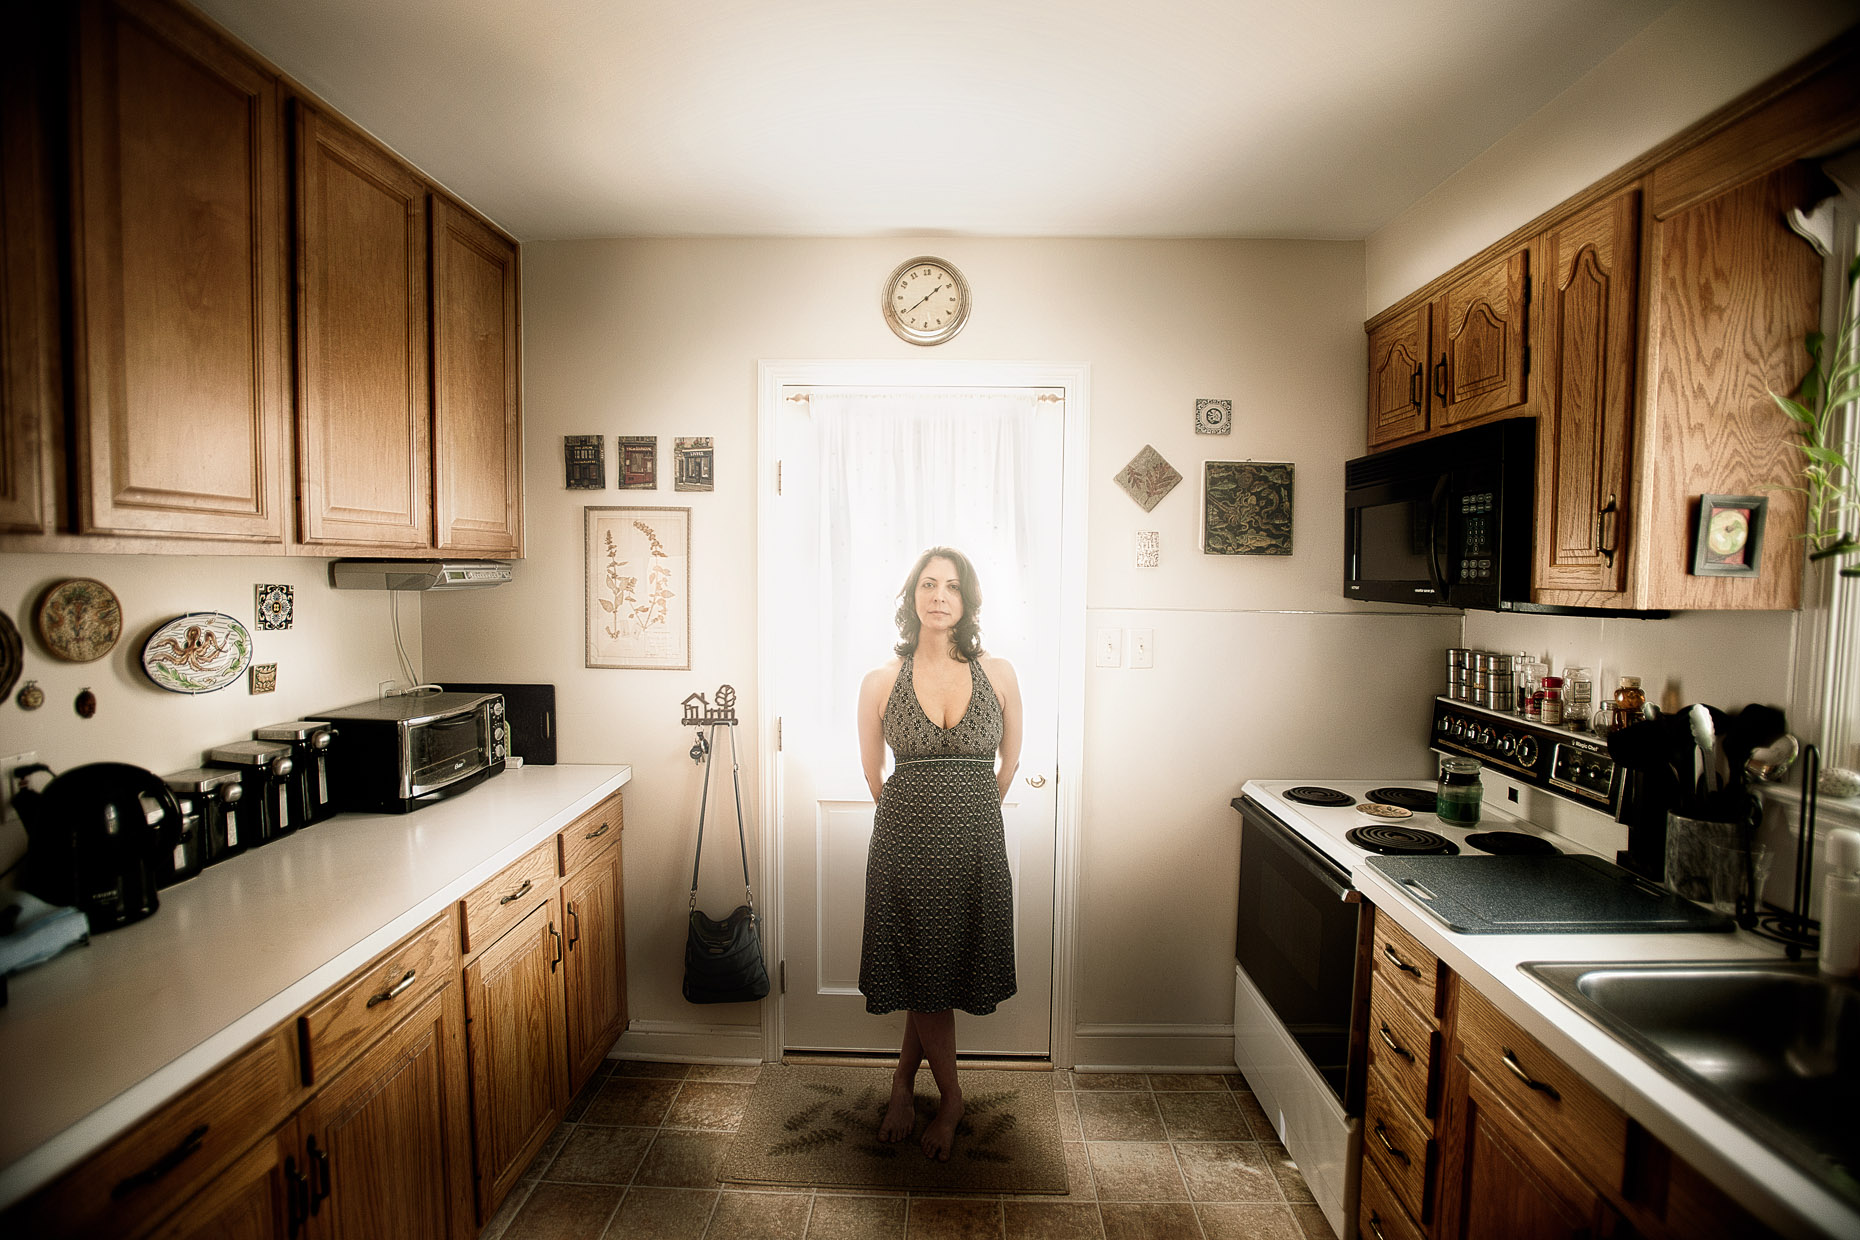 personal-project-housewife-woman-kitchen